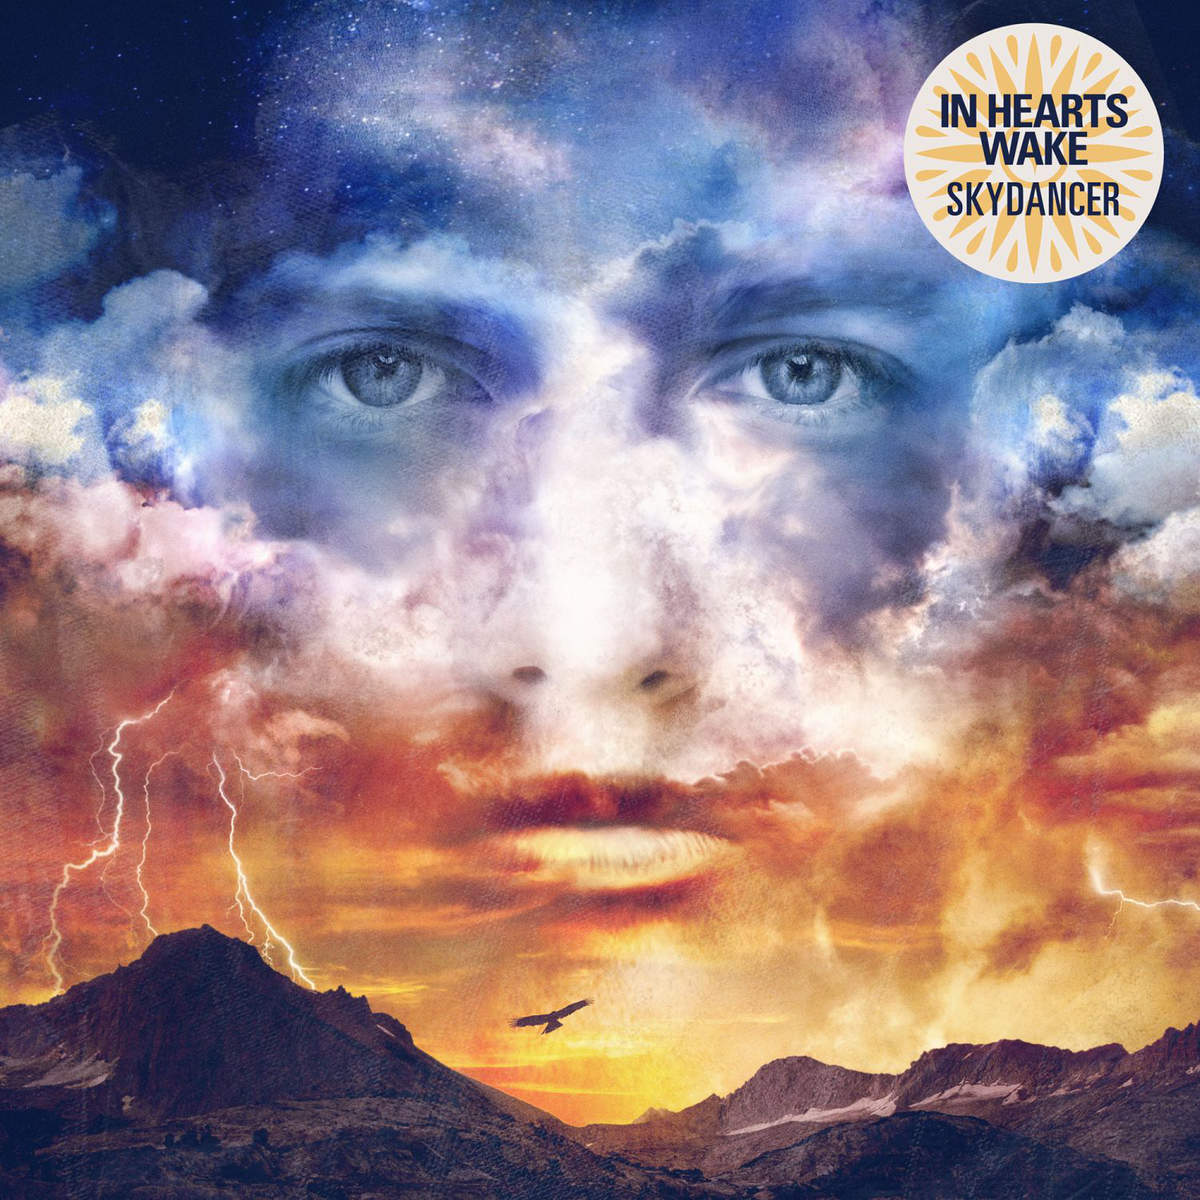 In Hearts Wake - Skydancer (2015)